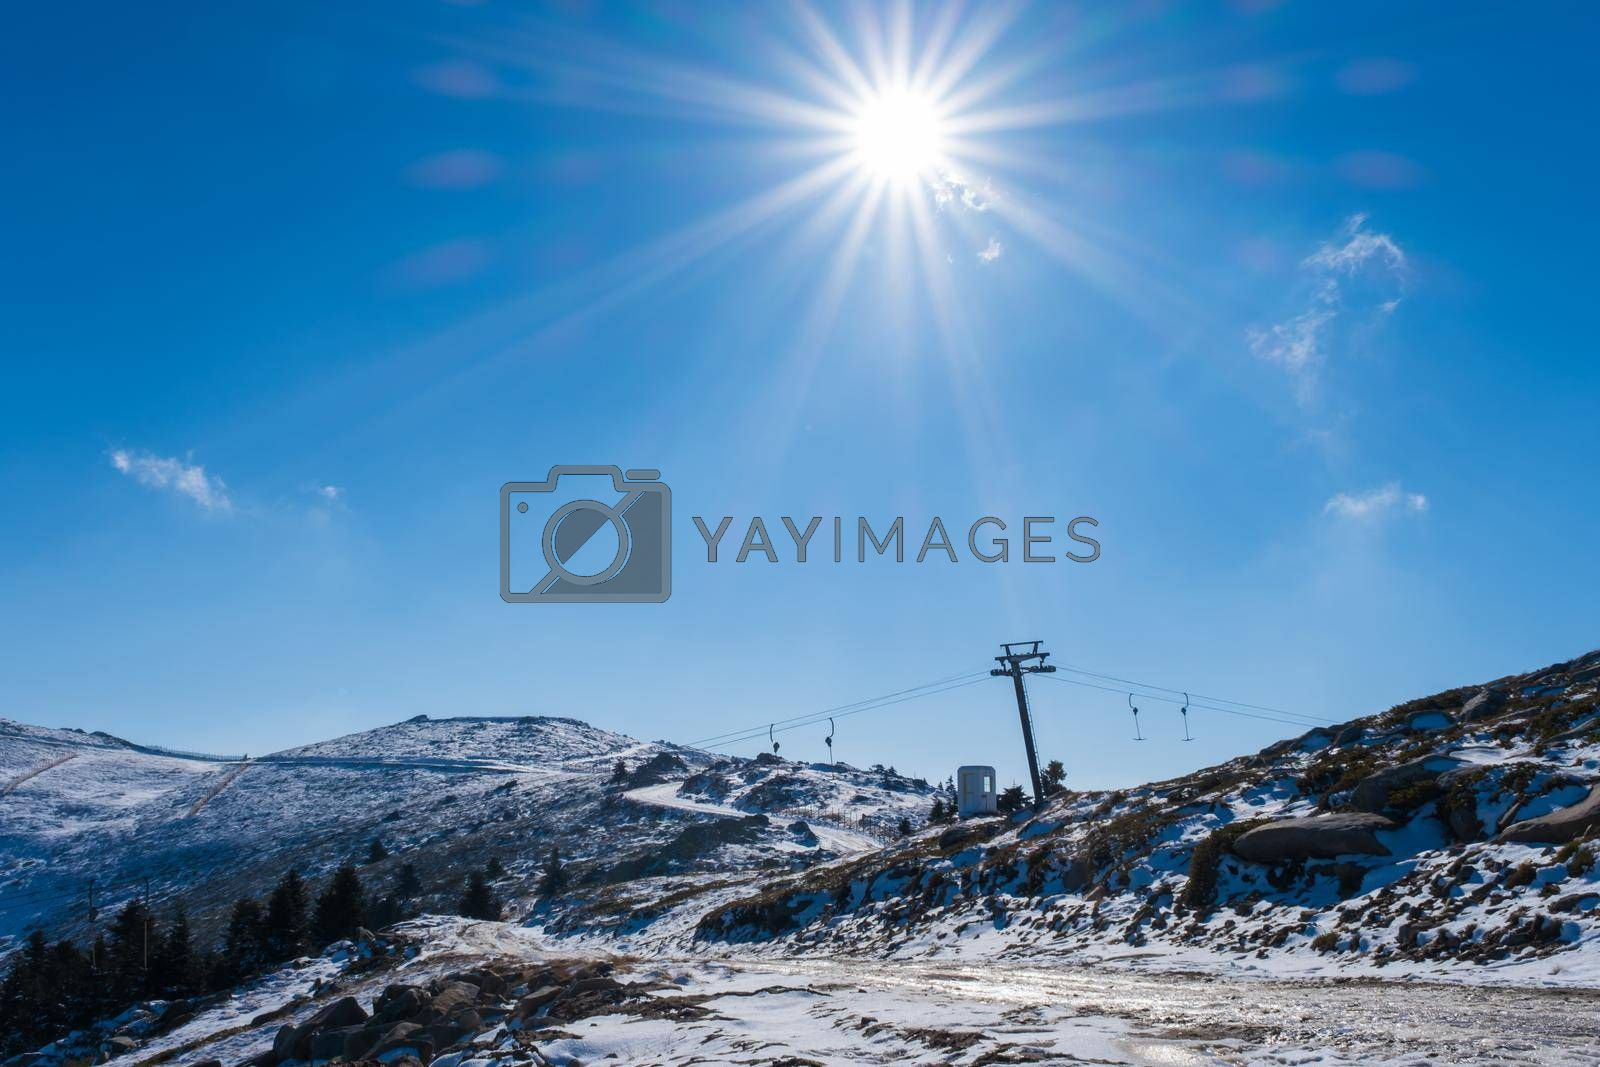 It depicts Sun Light Beams Covering the Frame on the Snowy Mountain in Winter